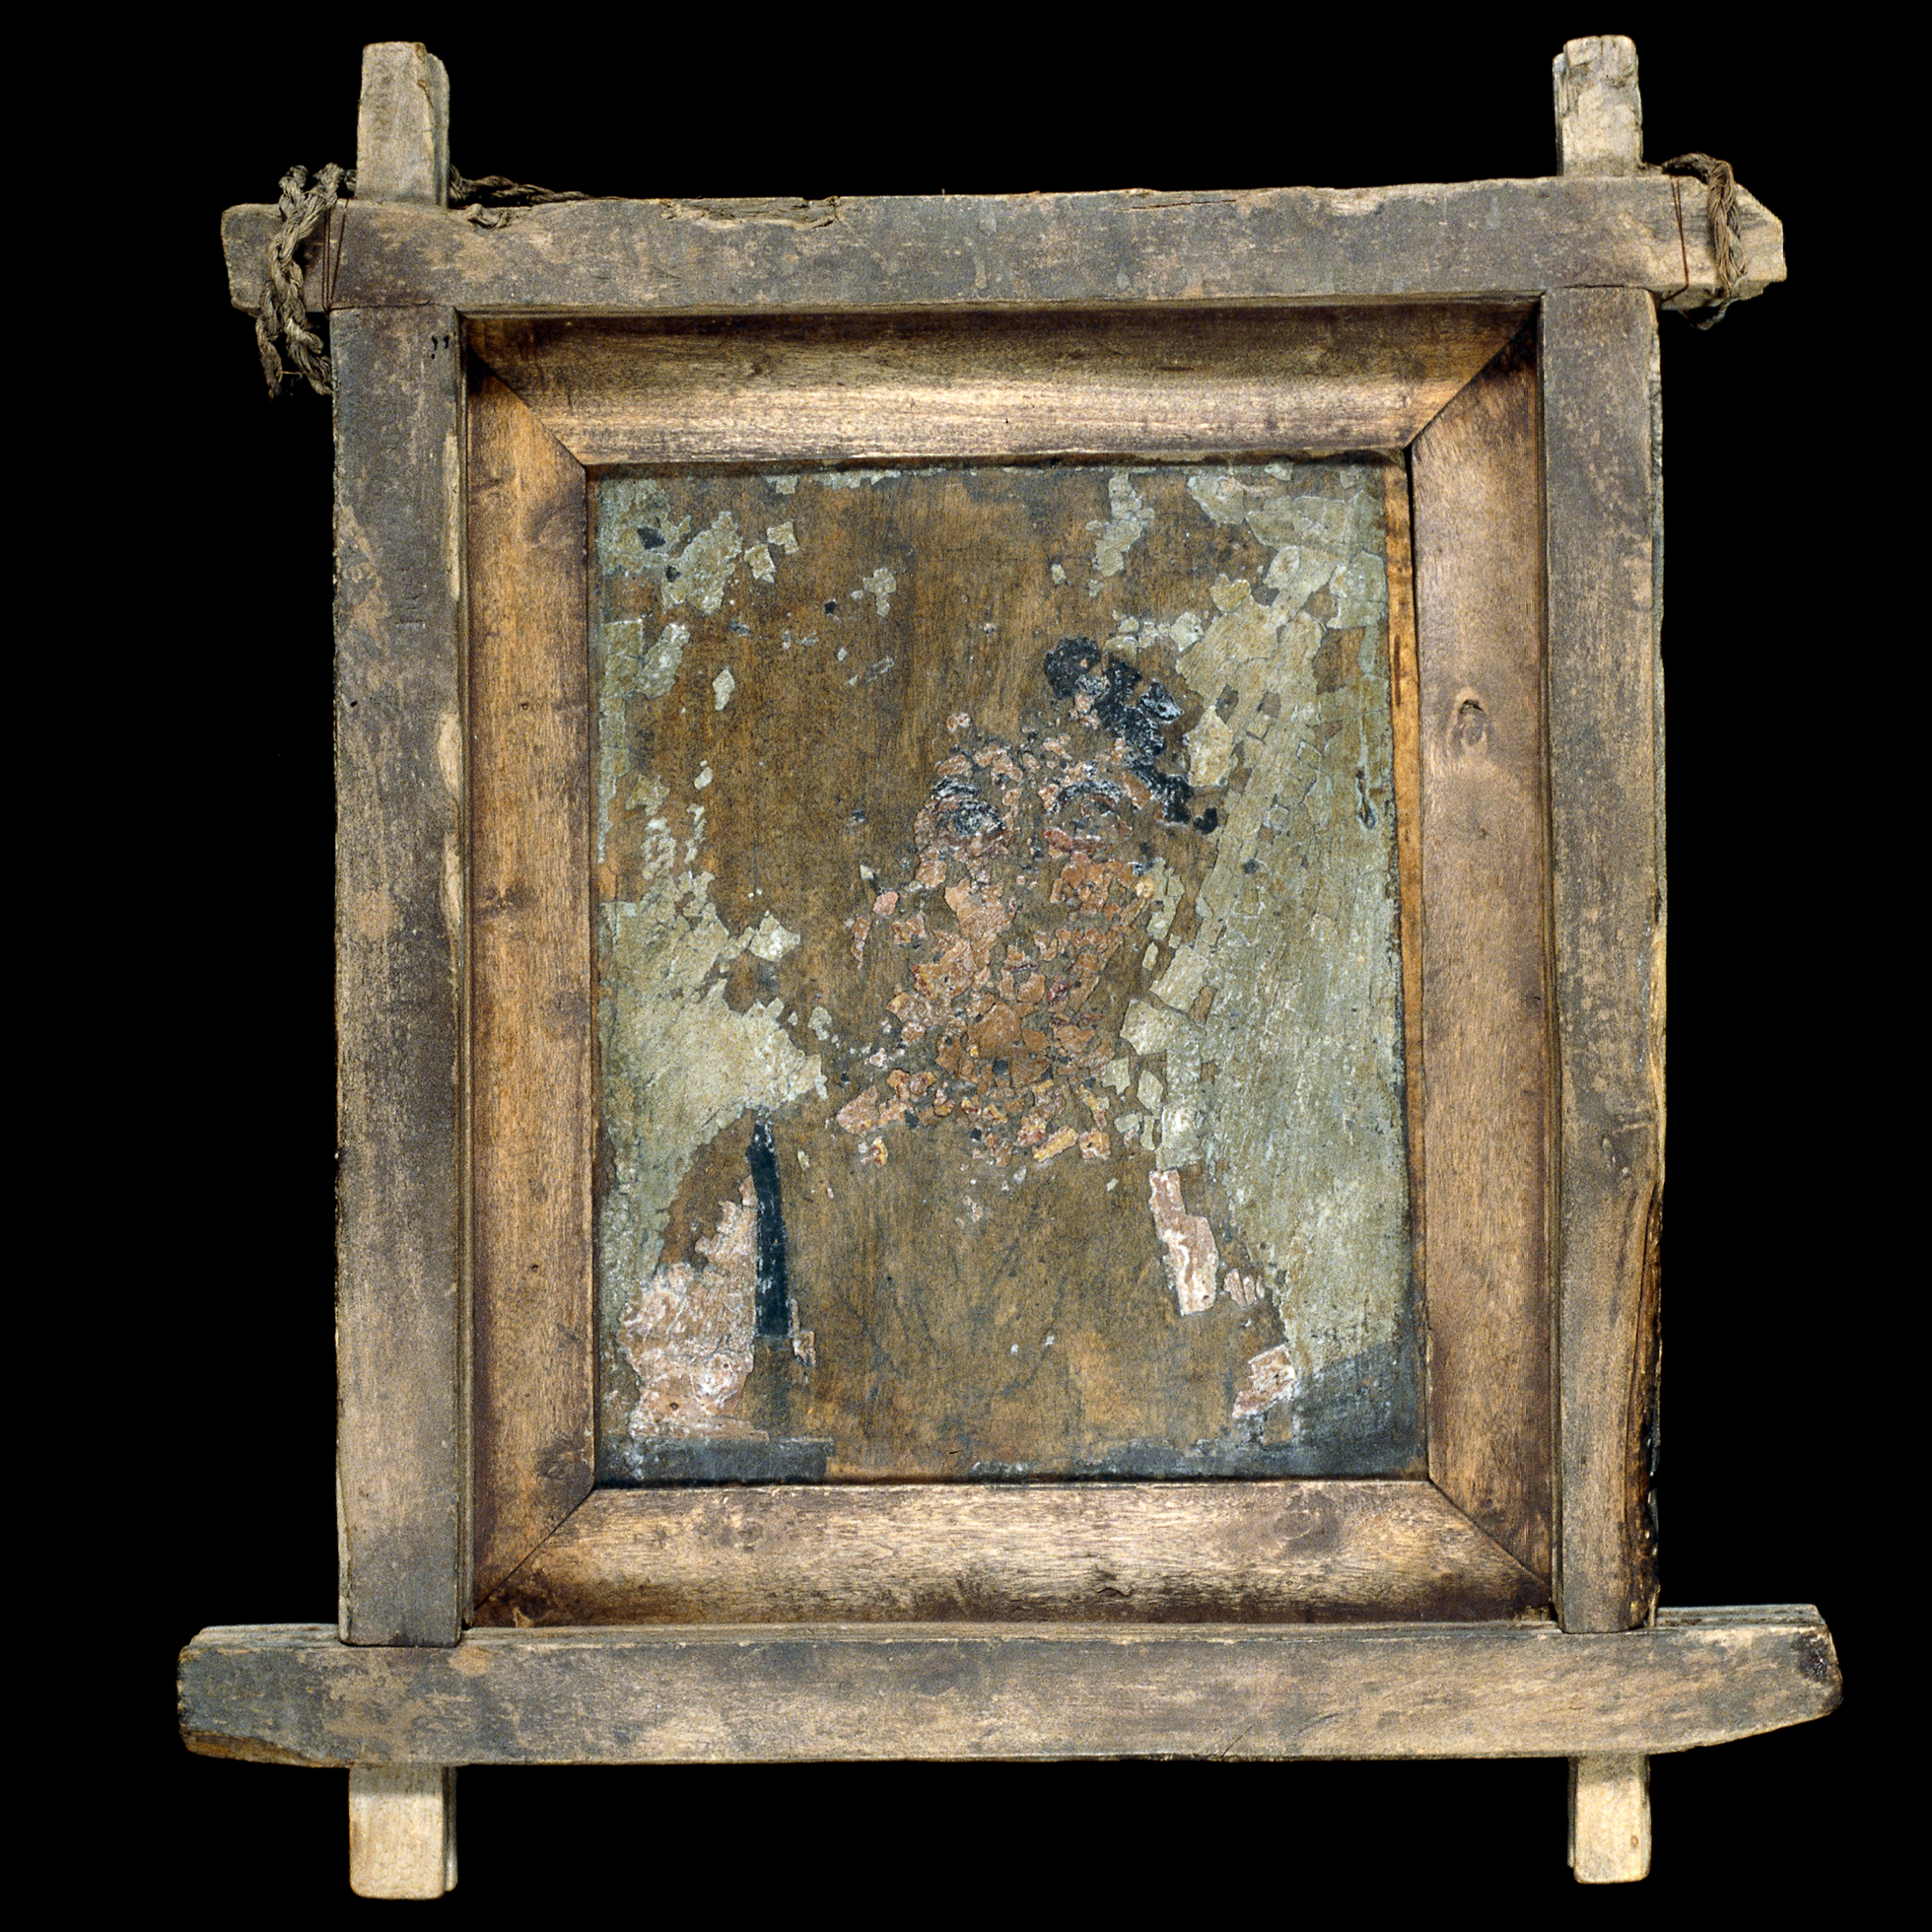 A framed wooden panel with a portrait of a woman, although the paint is badly damaged and flaking.